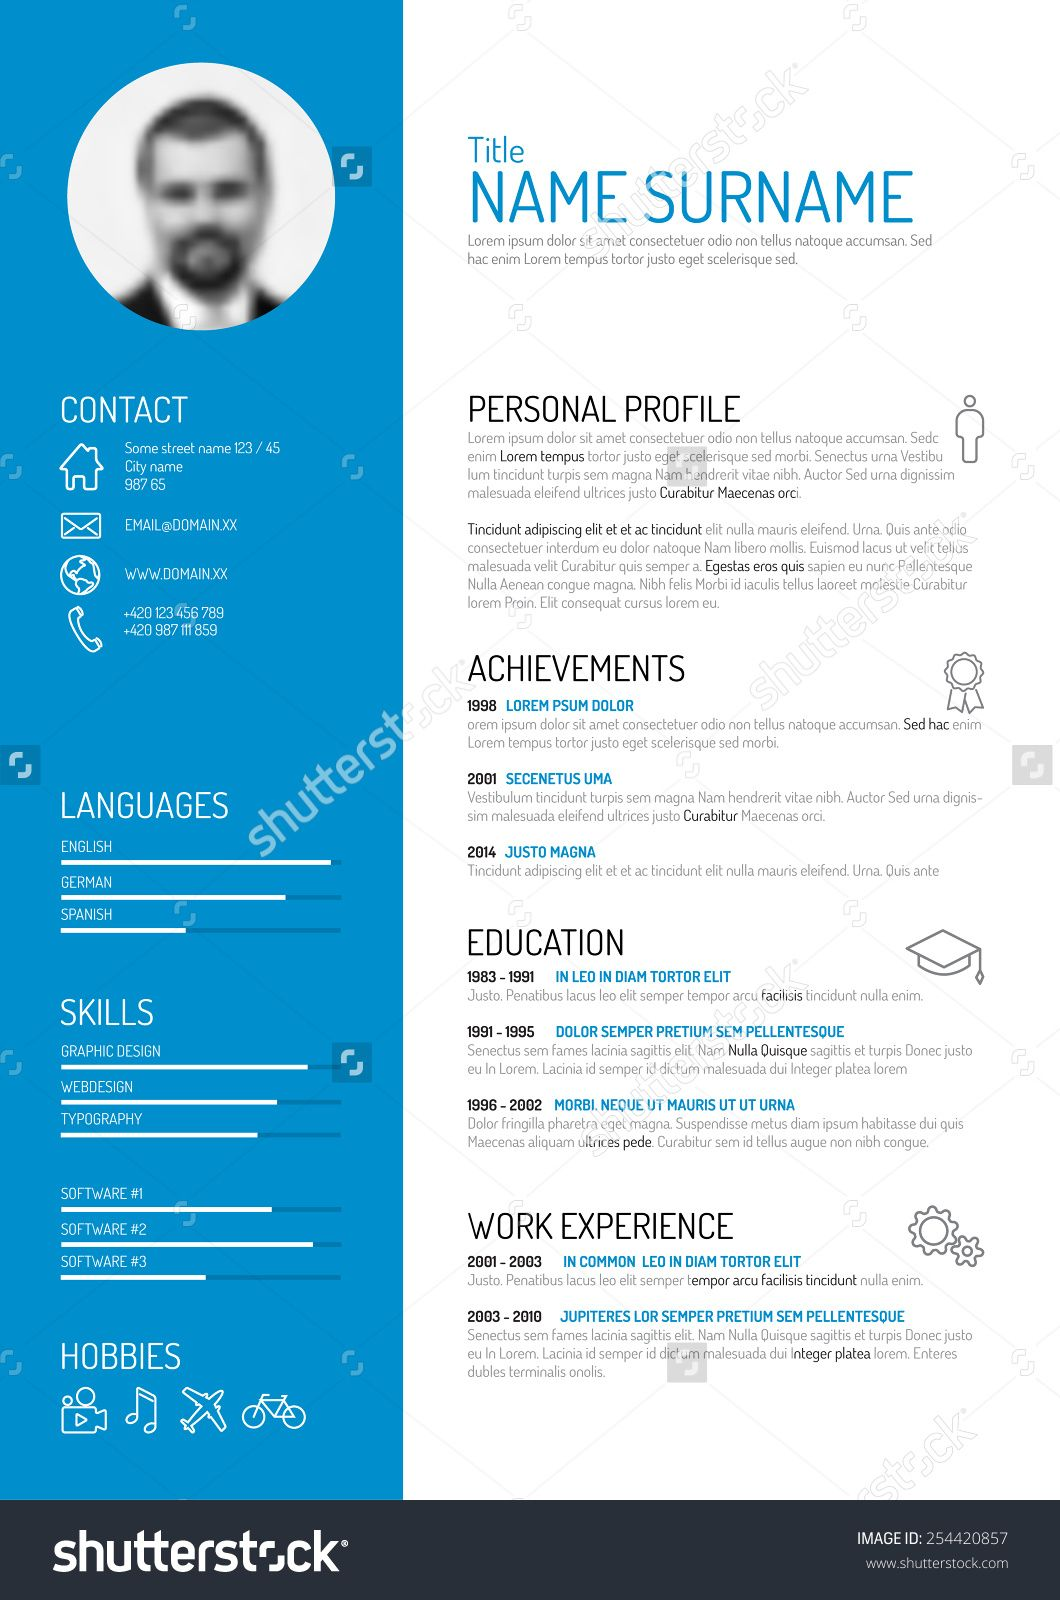 Templates For Curriculum Vitae Curriculum Vitae Icons  Google Zoeken  Templates  Pinterest